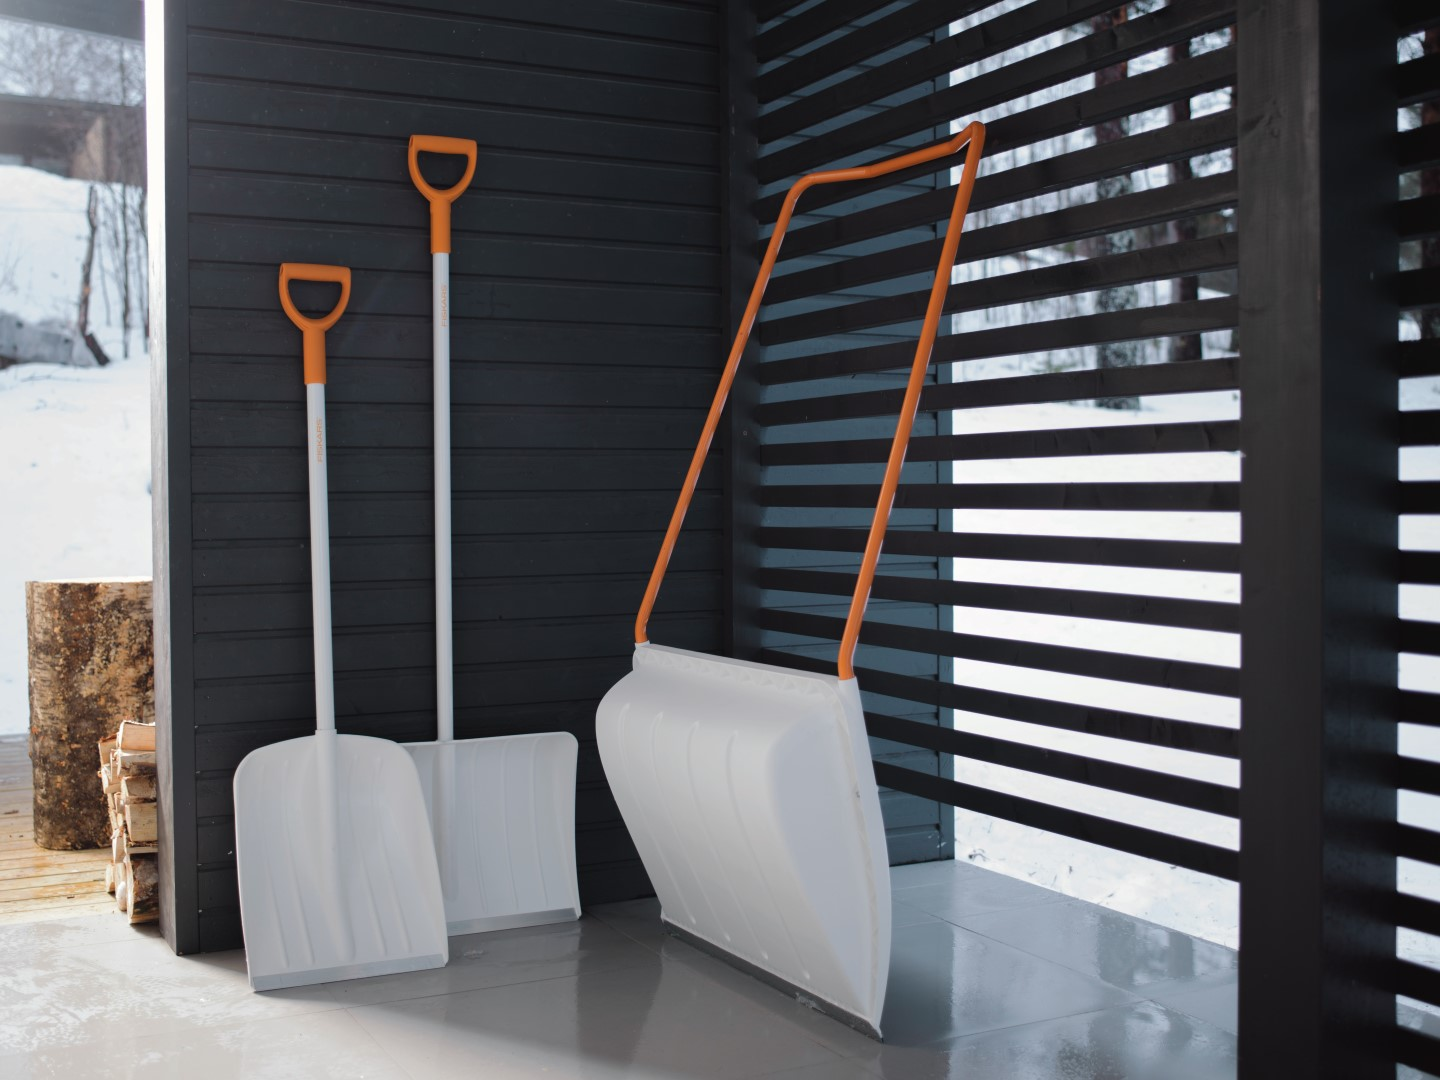 Fiskars_Environmental_Garden_SnowXpert_white_pusher_spade_sledge